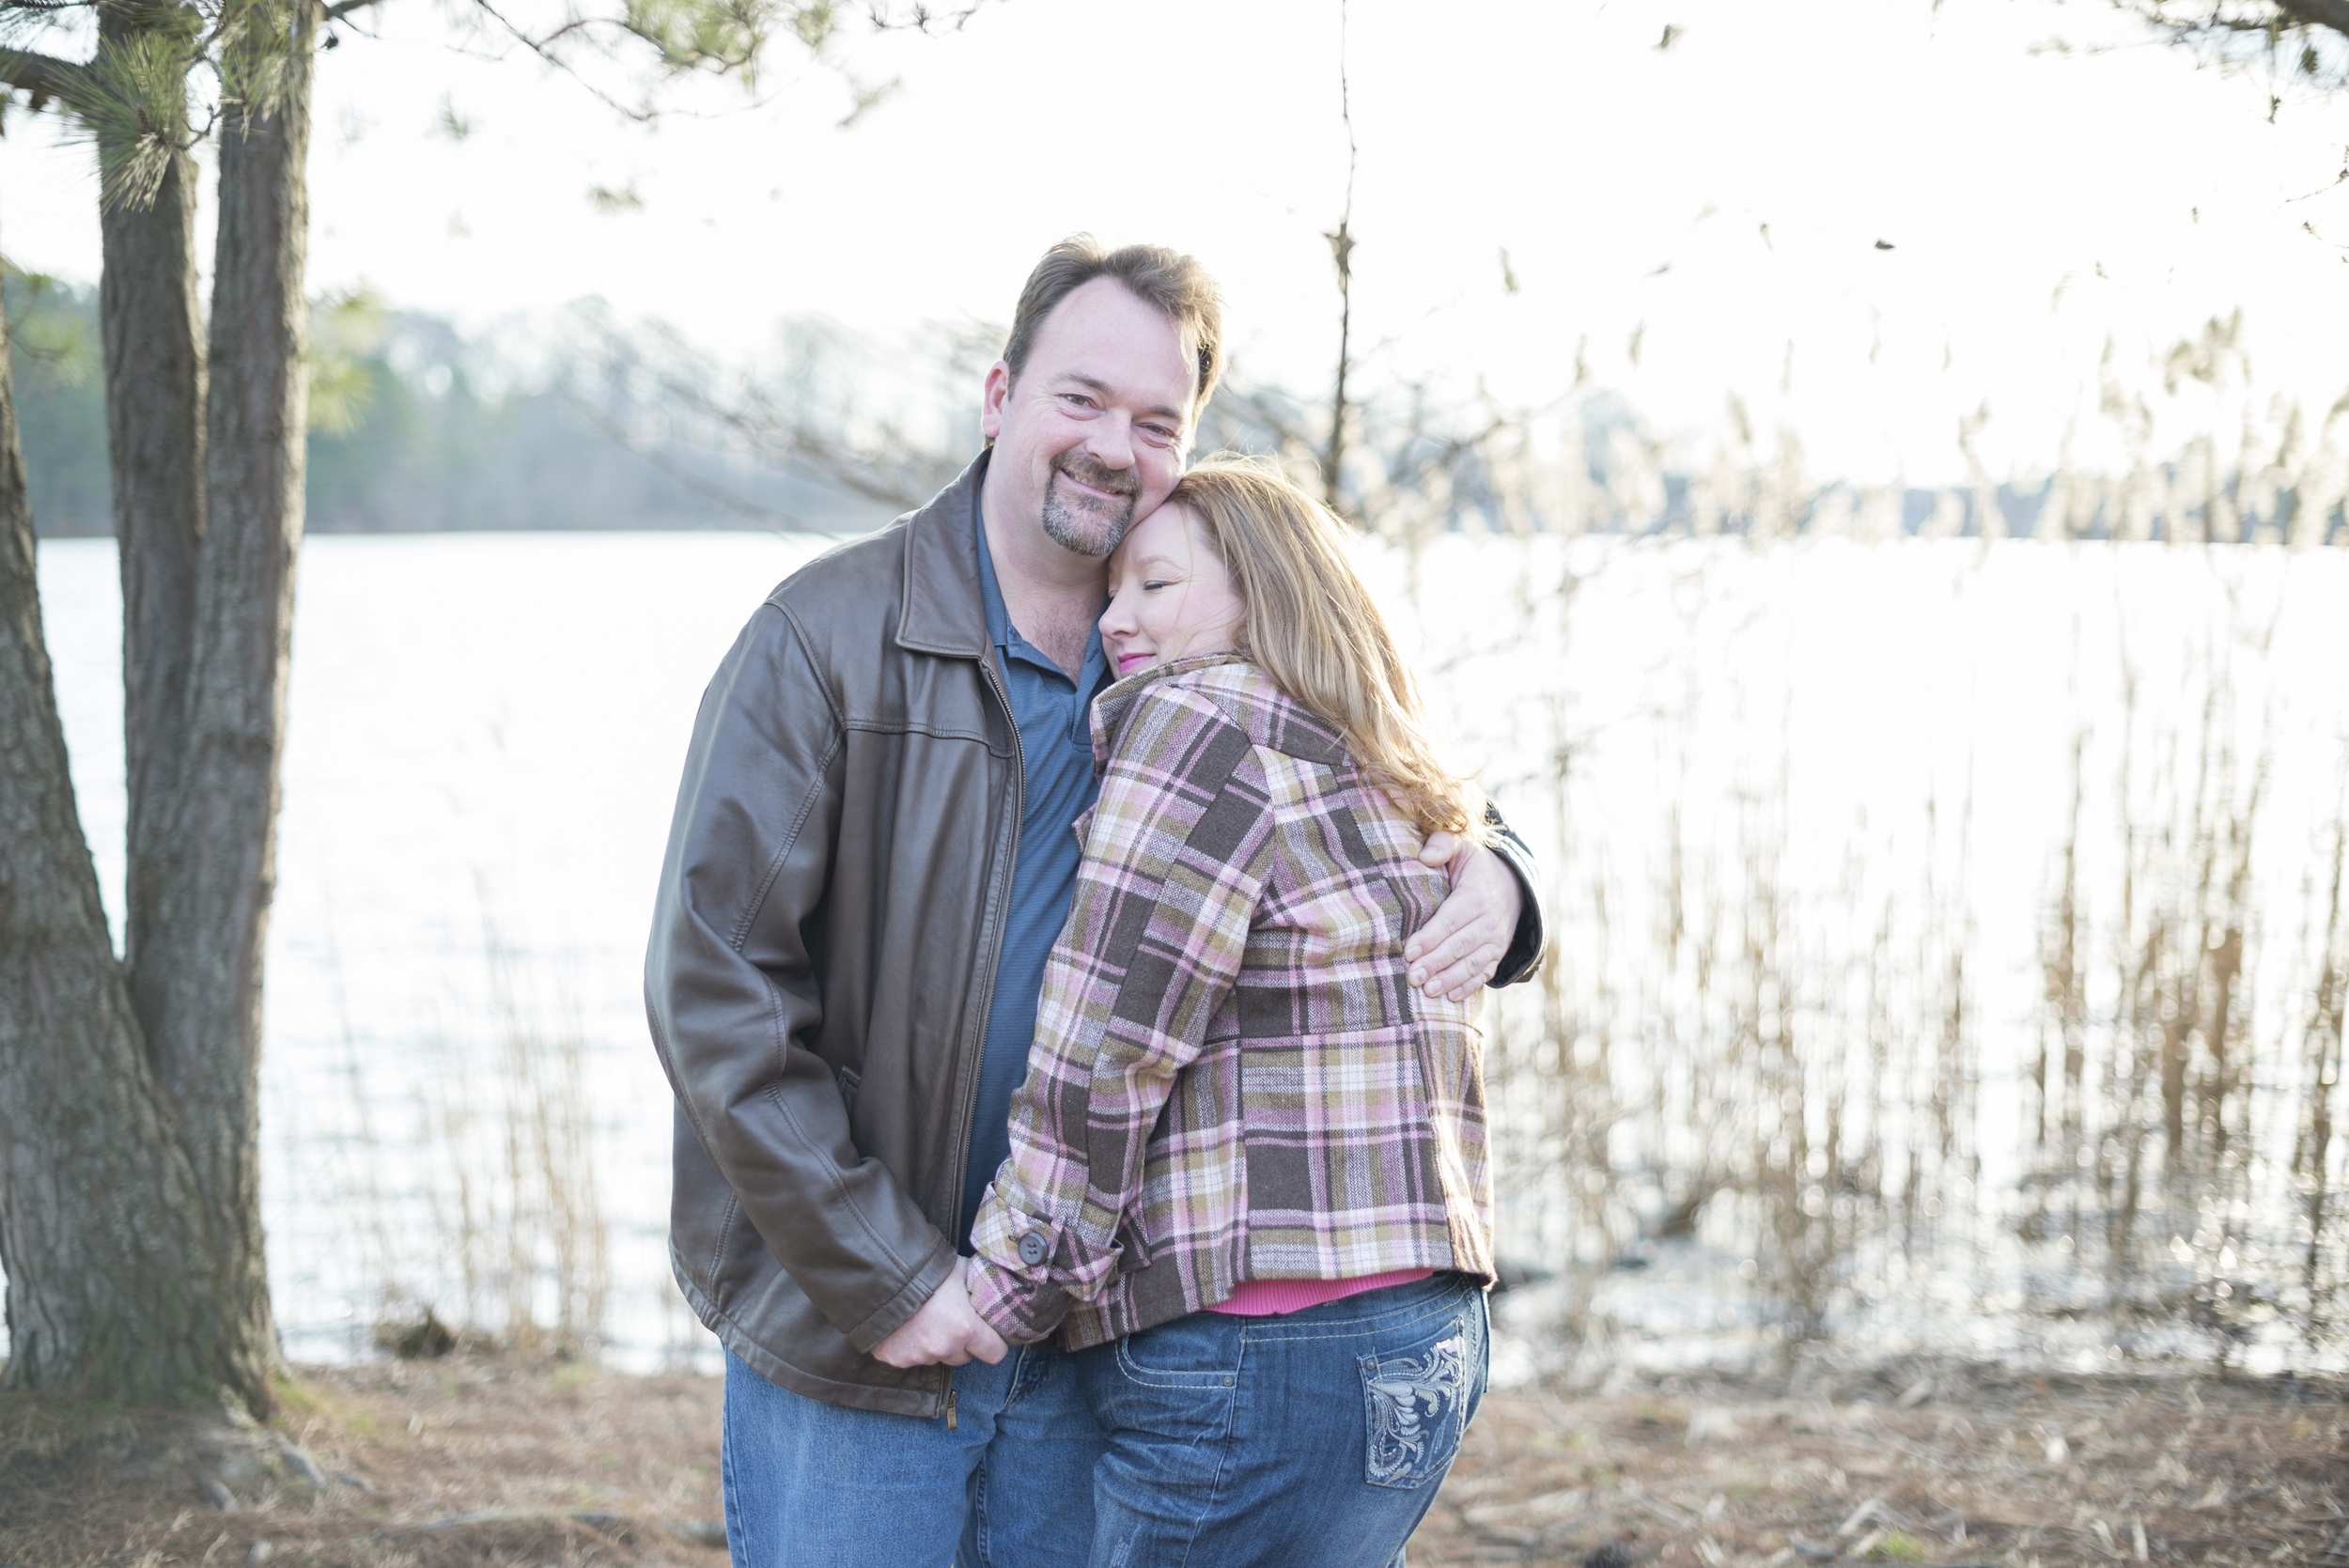 Sweet, intimate engagement session poses